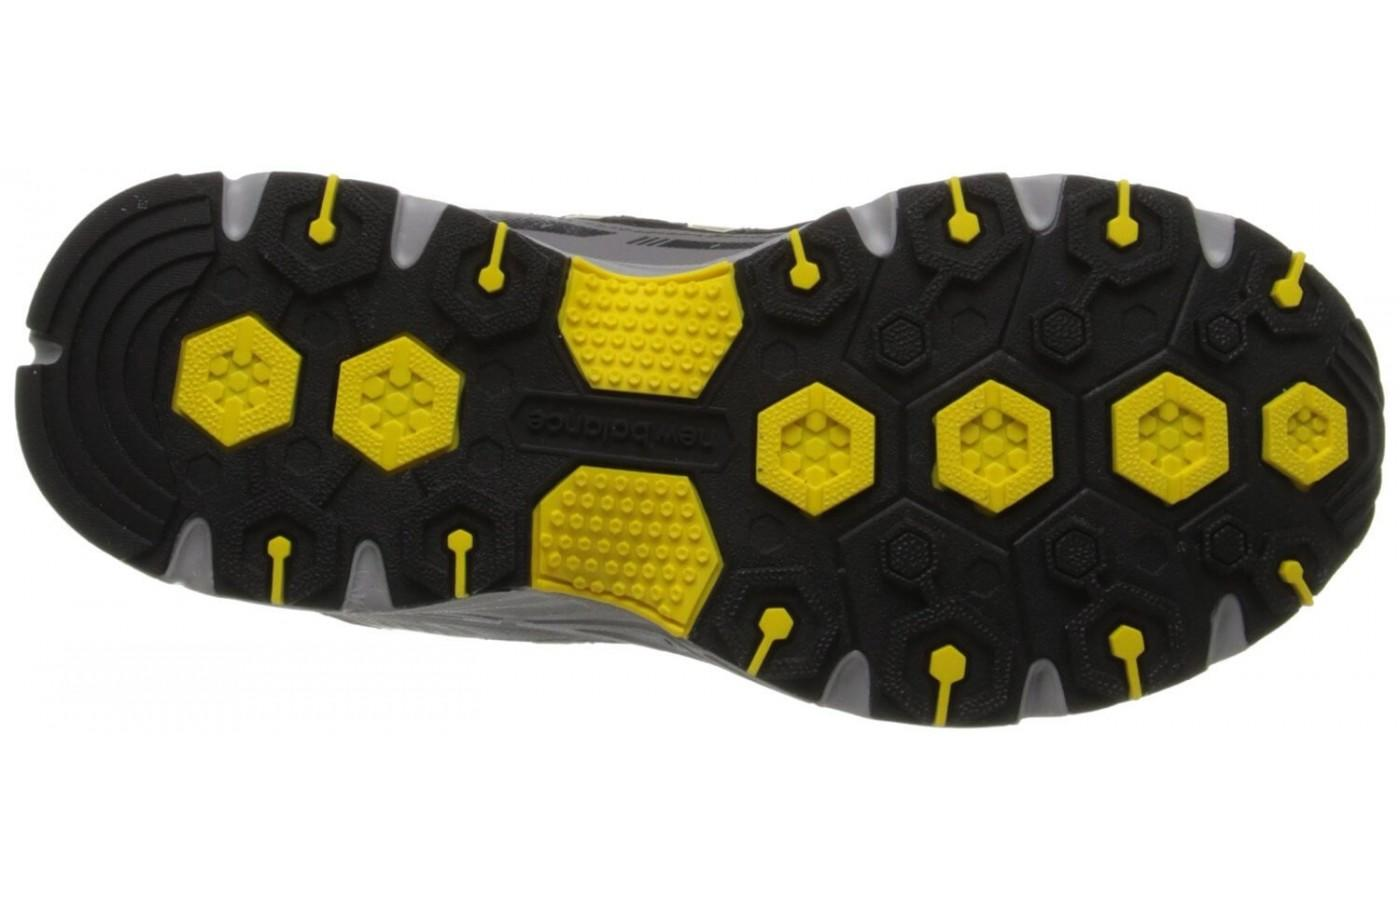 The outsoles of the New Balance MT510 are geared toward roads and trails.